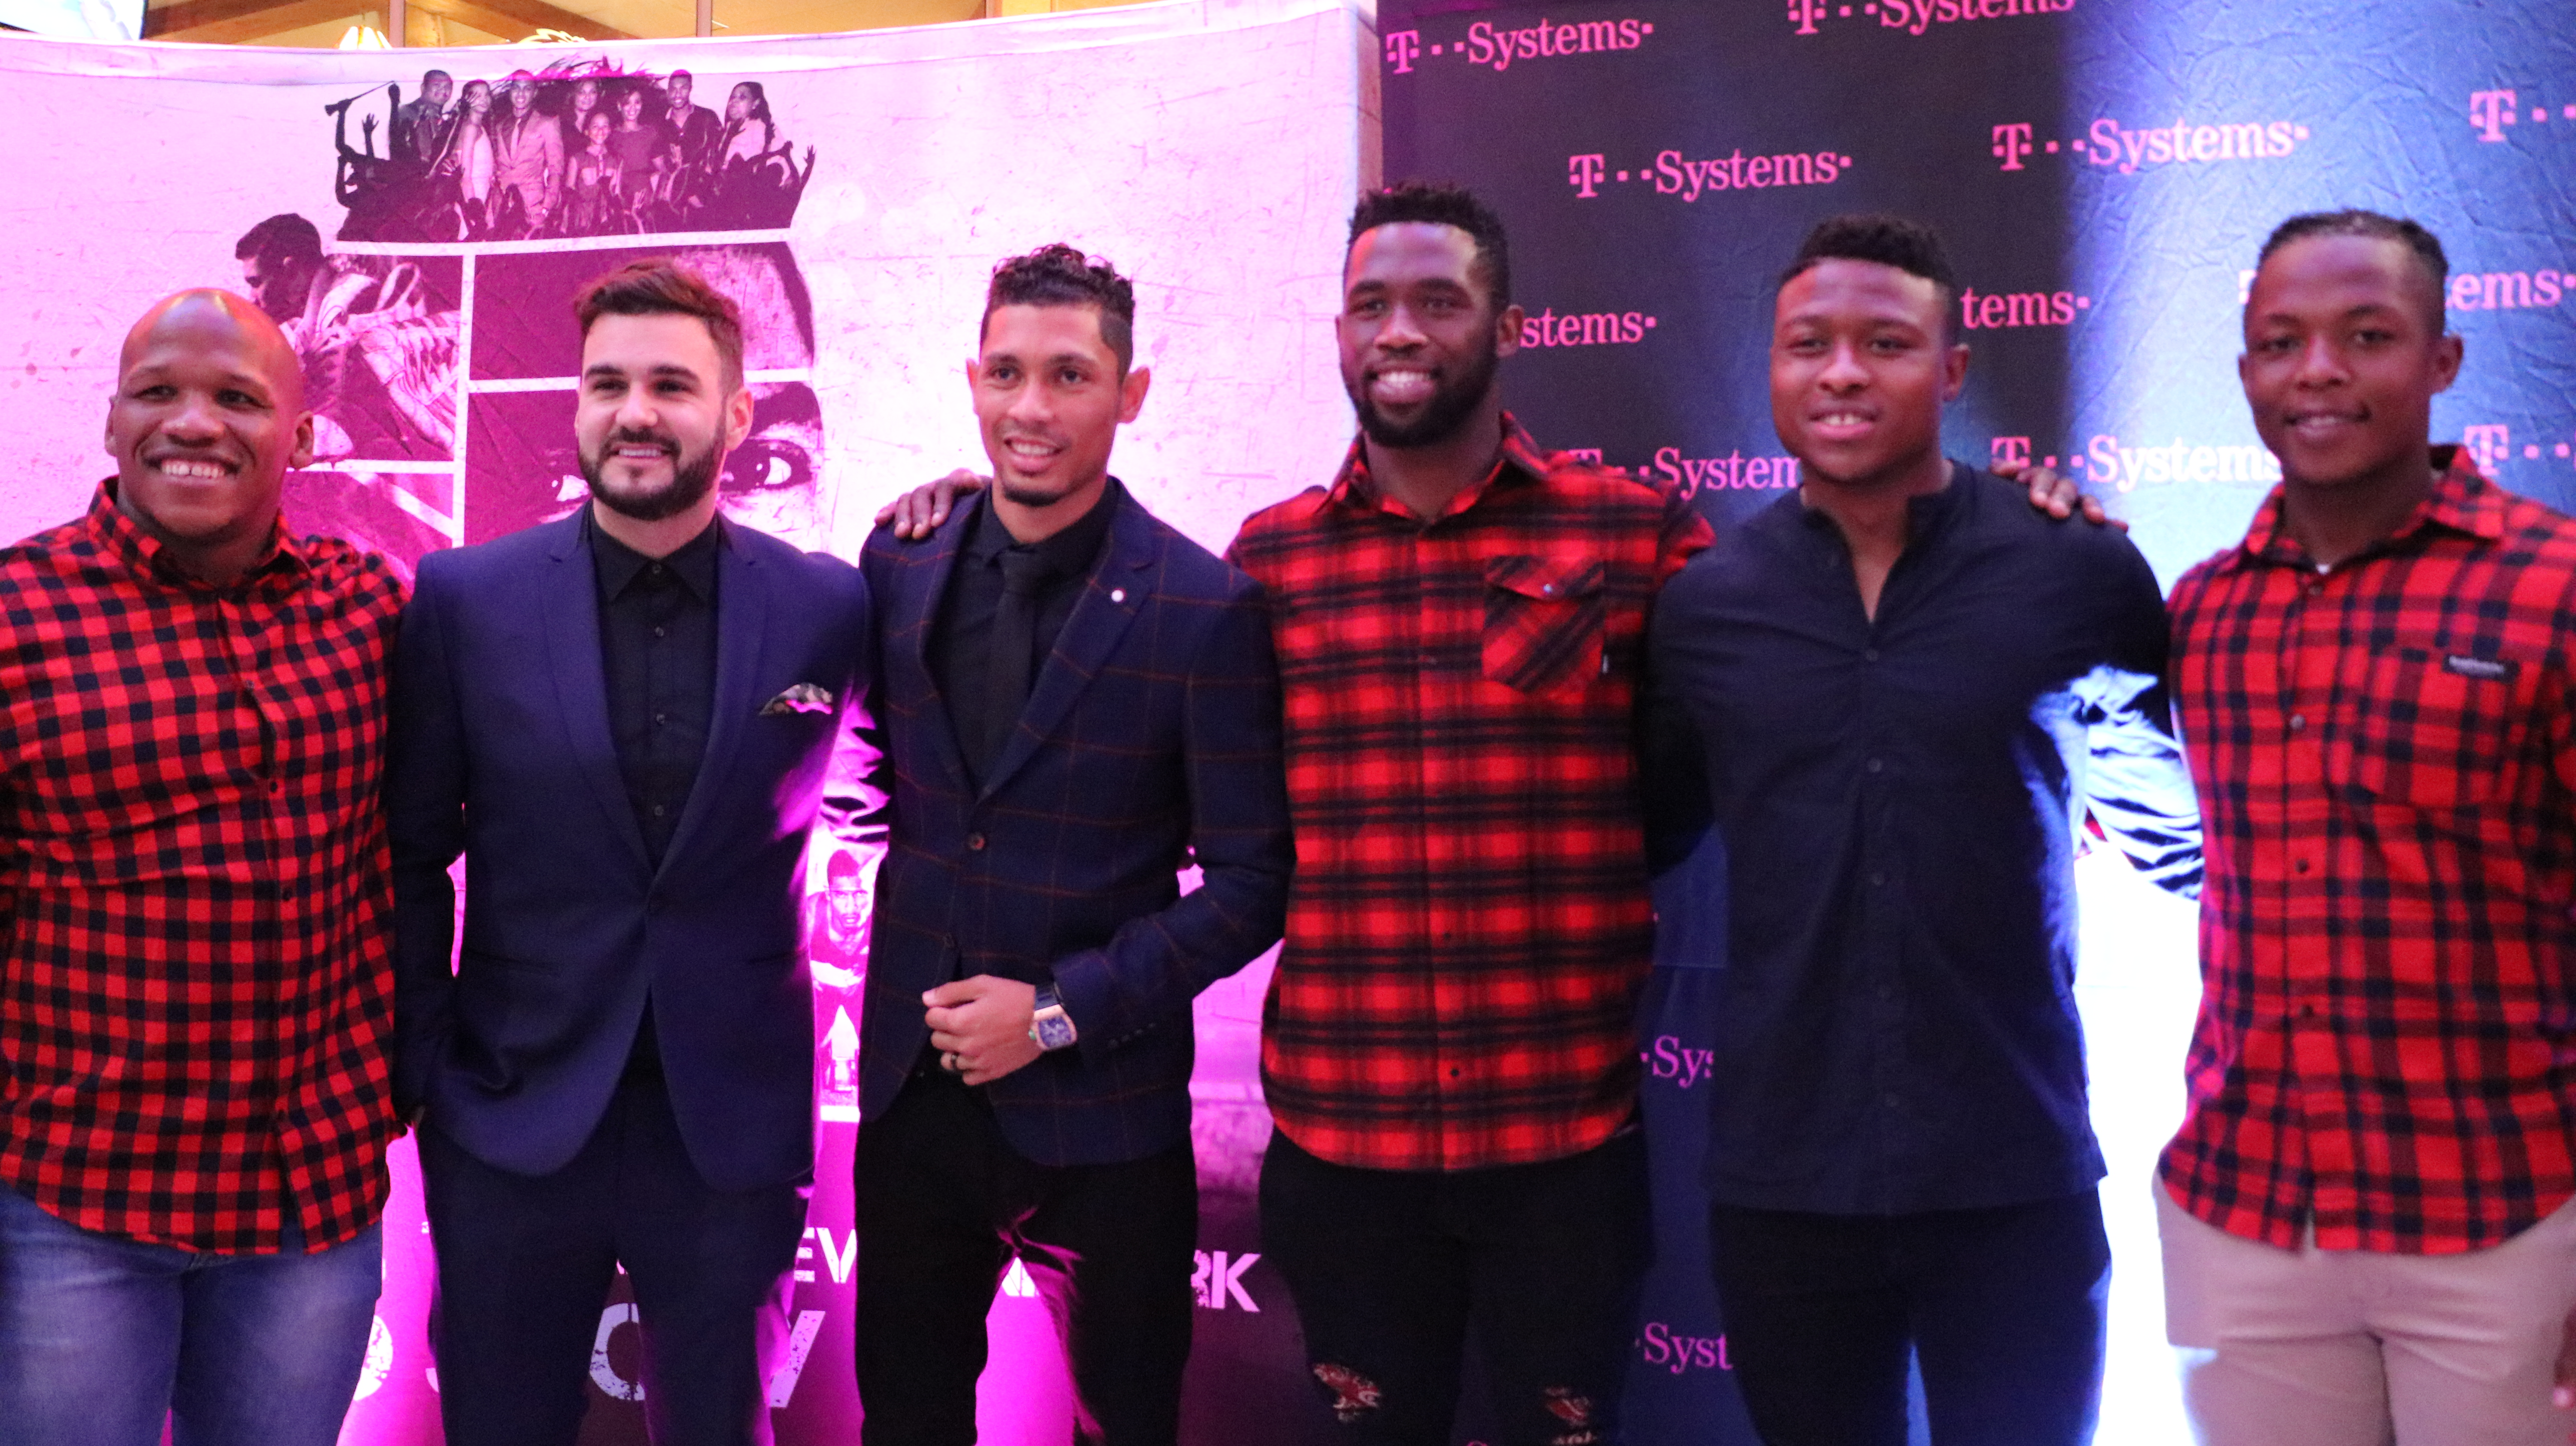 SA celebrities from the sport and entertainment sectors joined Van Niekerk at the